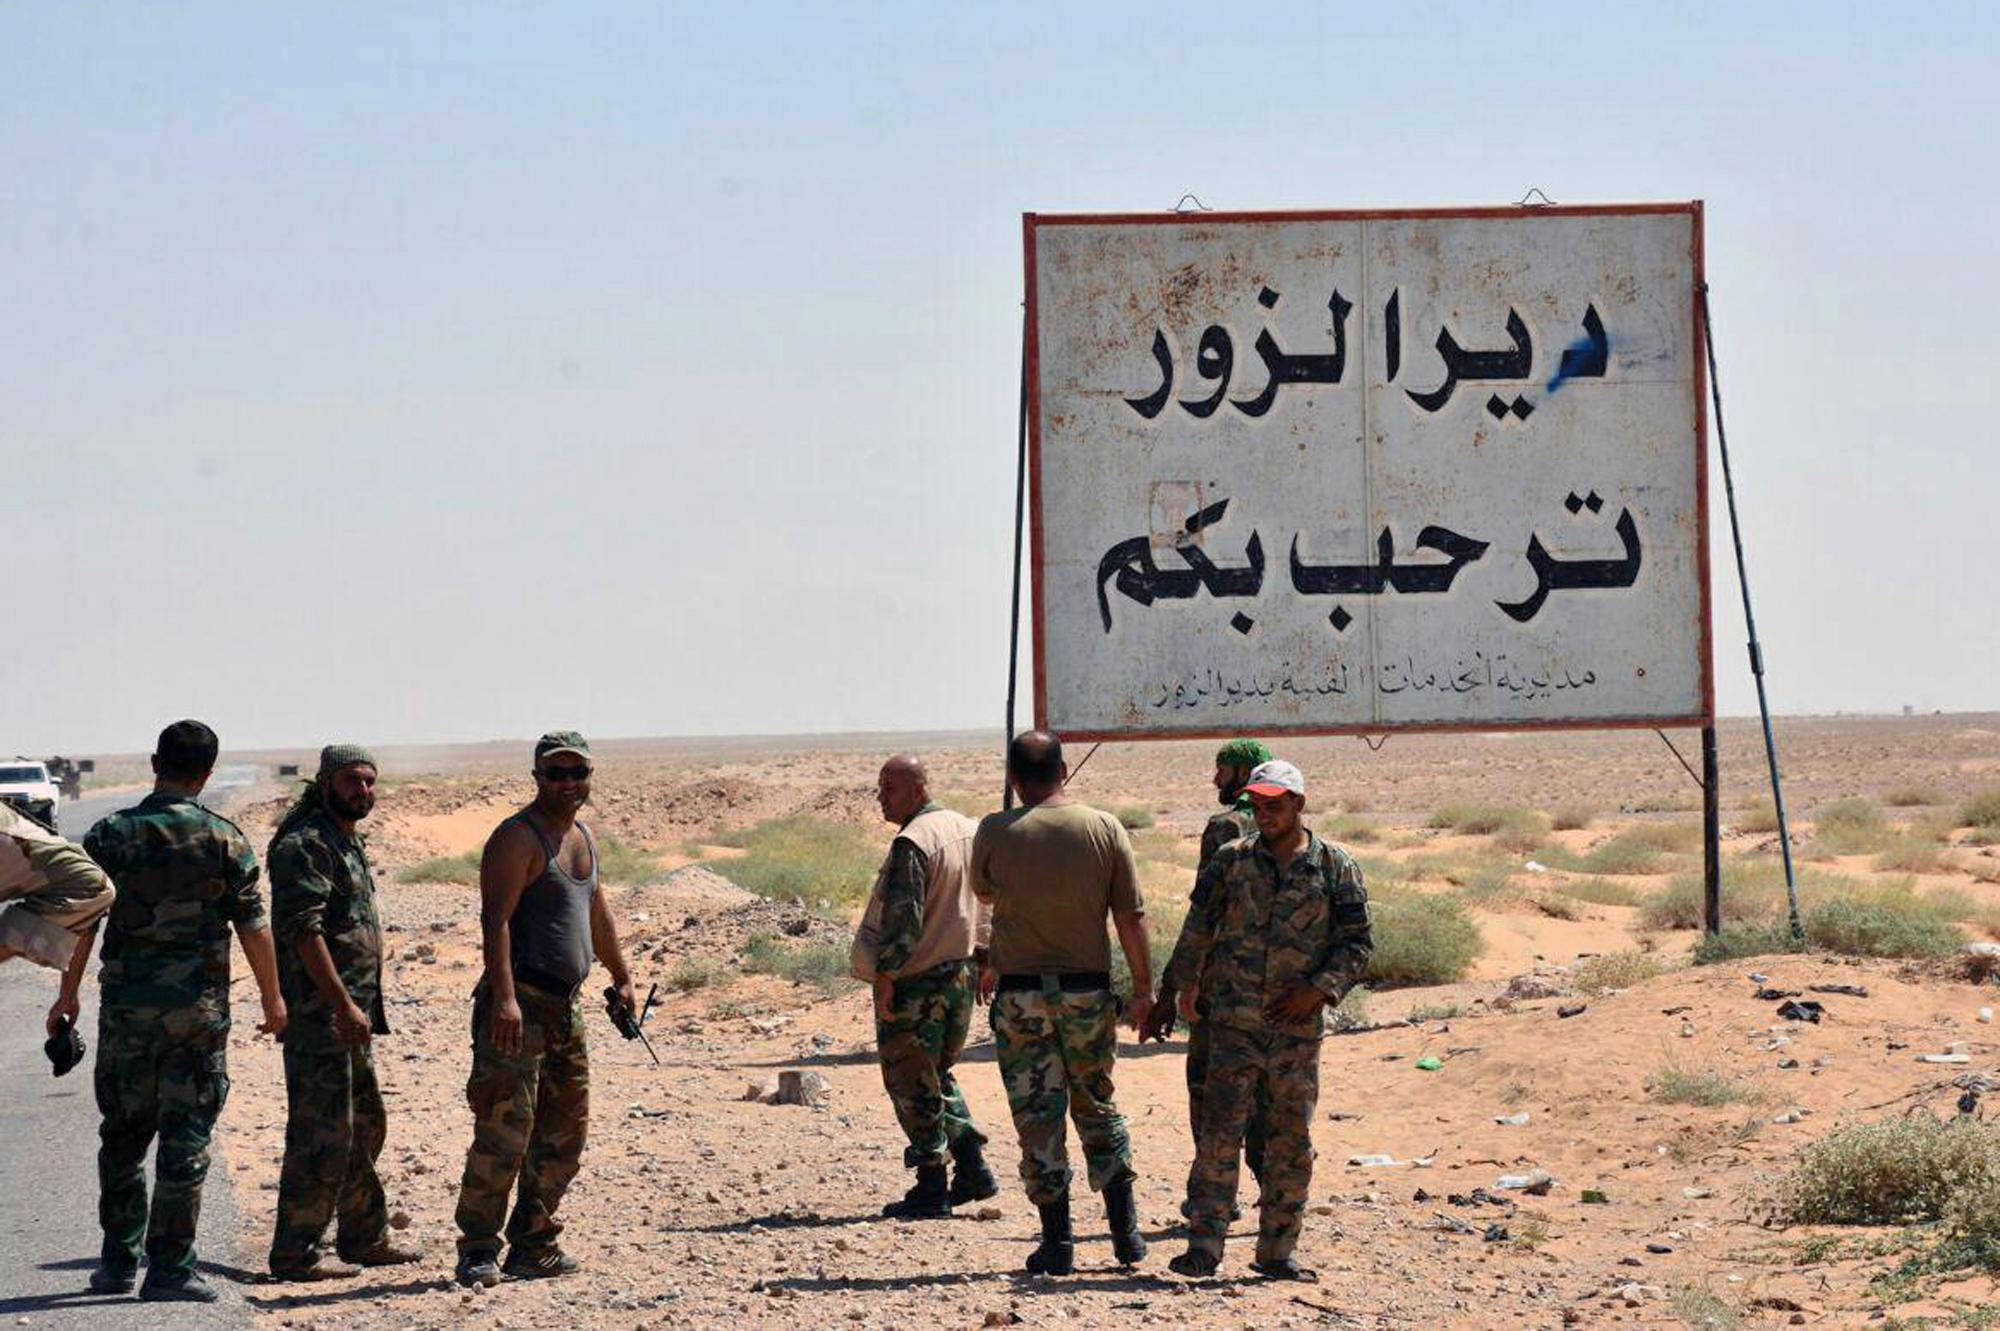 "File - in this file photo released online on Sept. 3, 2017, by the Syrian official news agency SANA, shows Syrian troops and pro-government gunmen standing next to a placard in Arabic which reads, ""Deir el-Zour welcomes you,"" in the eastern city of Deir el-Zour, Syria.  Syria state media says pro-government troops have seized the Islamic state stronghold town of Mayadeen after weeks of fighting for the oil-rich eastern Deir el-Zour province that straddles the border with Iraq. (SANA via AP, File)"